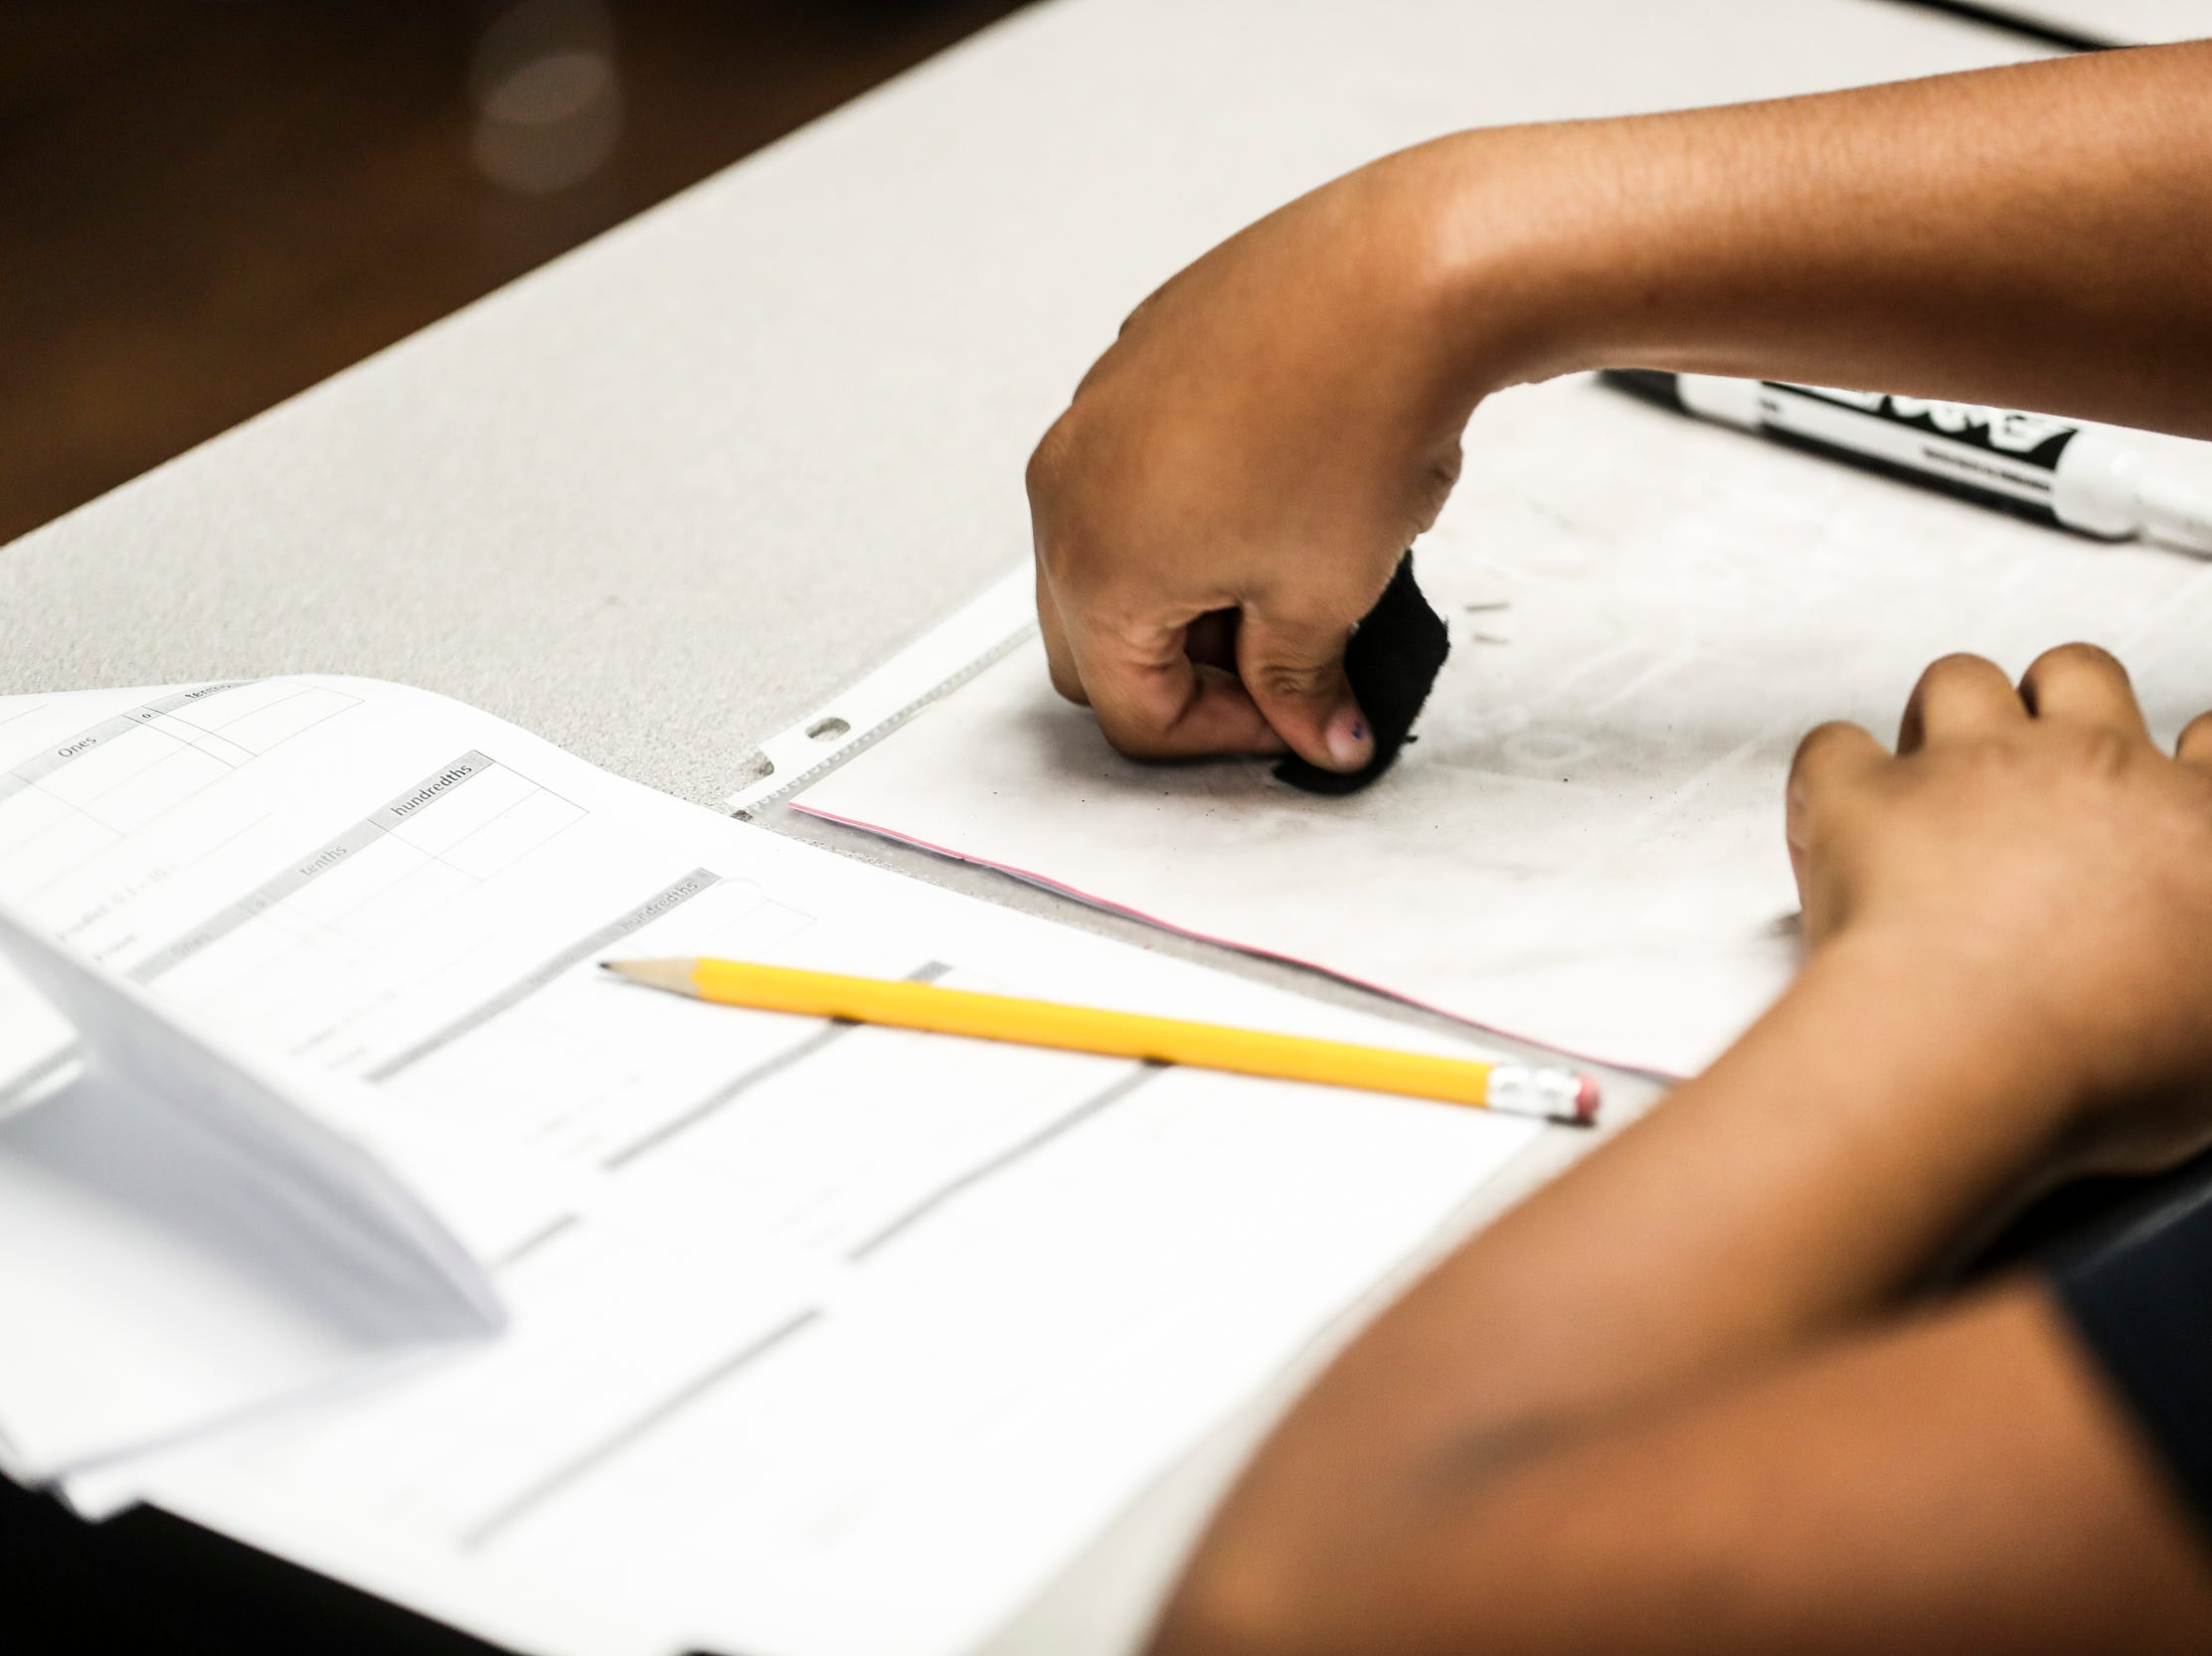 Tennessee has a strong plan to help its struggling schools, national report says